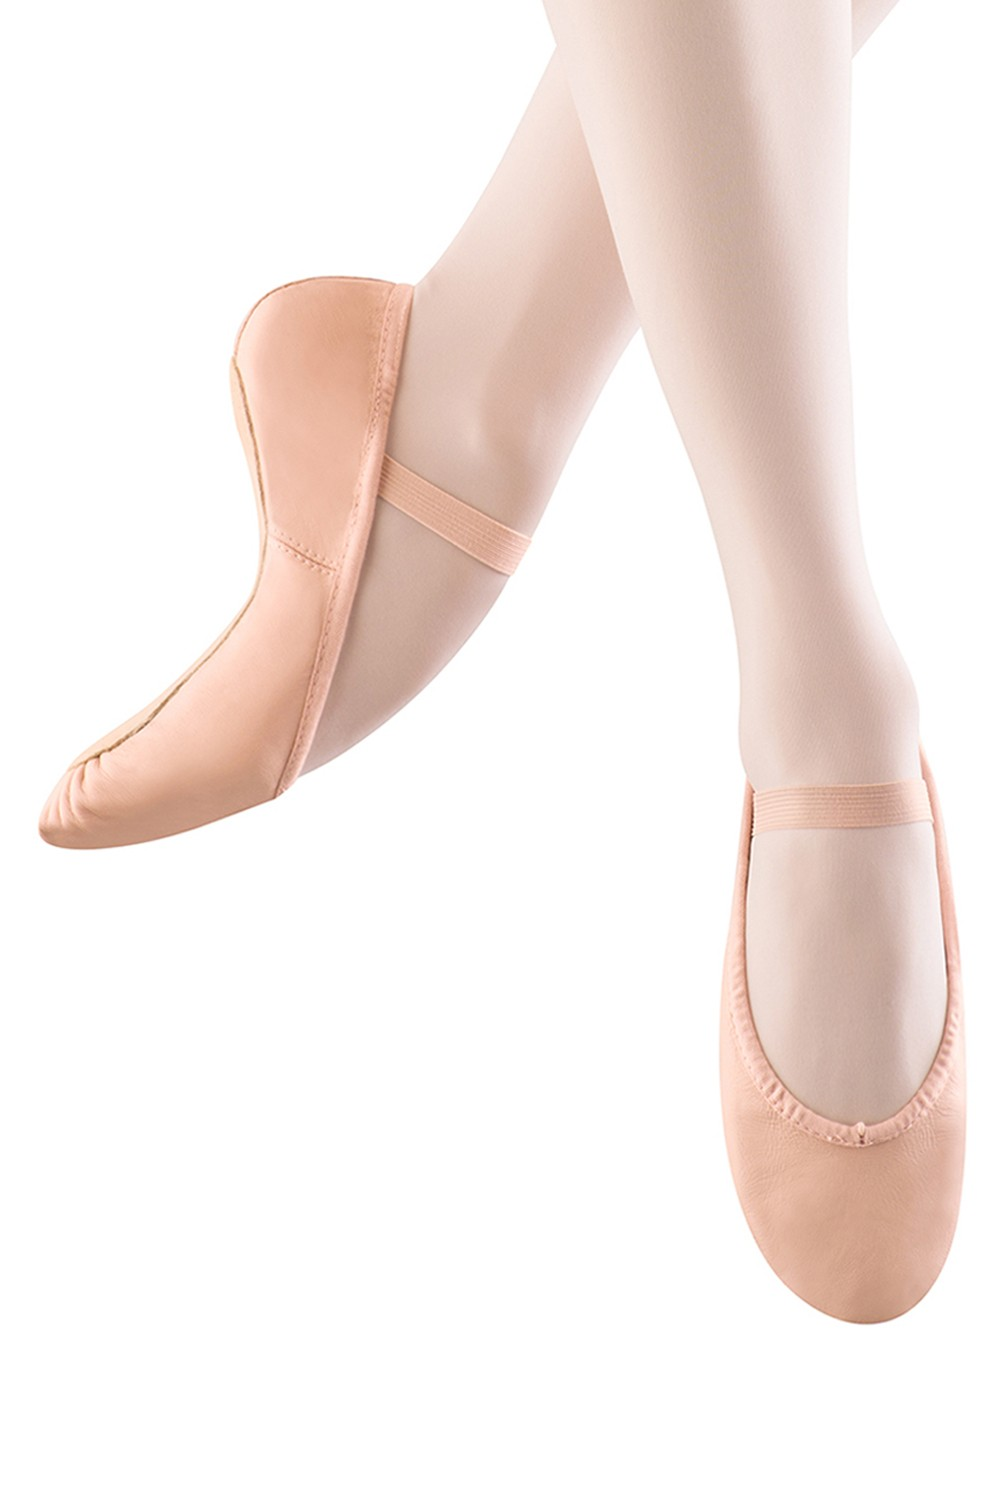 Dansoft - Bambini Girl's Ballet Shoes